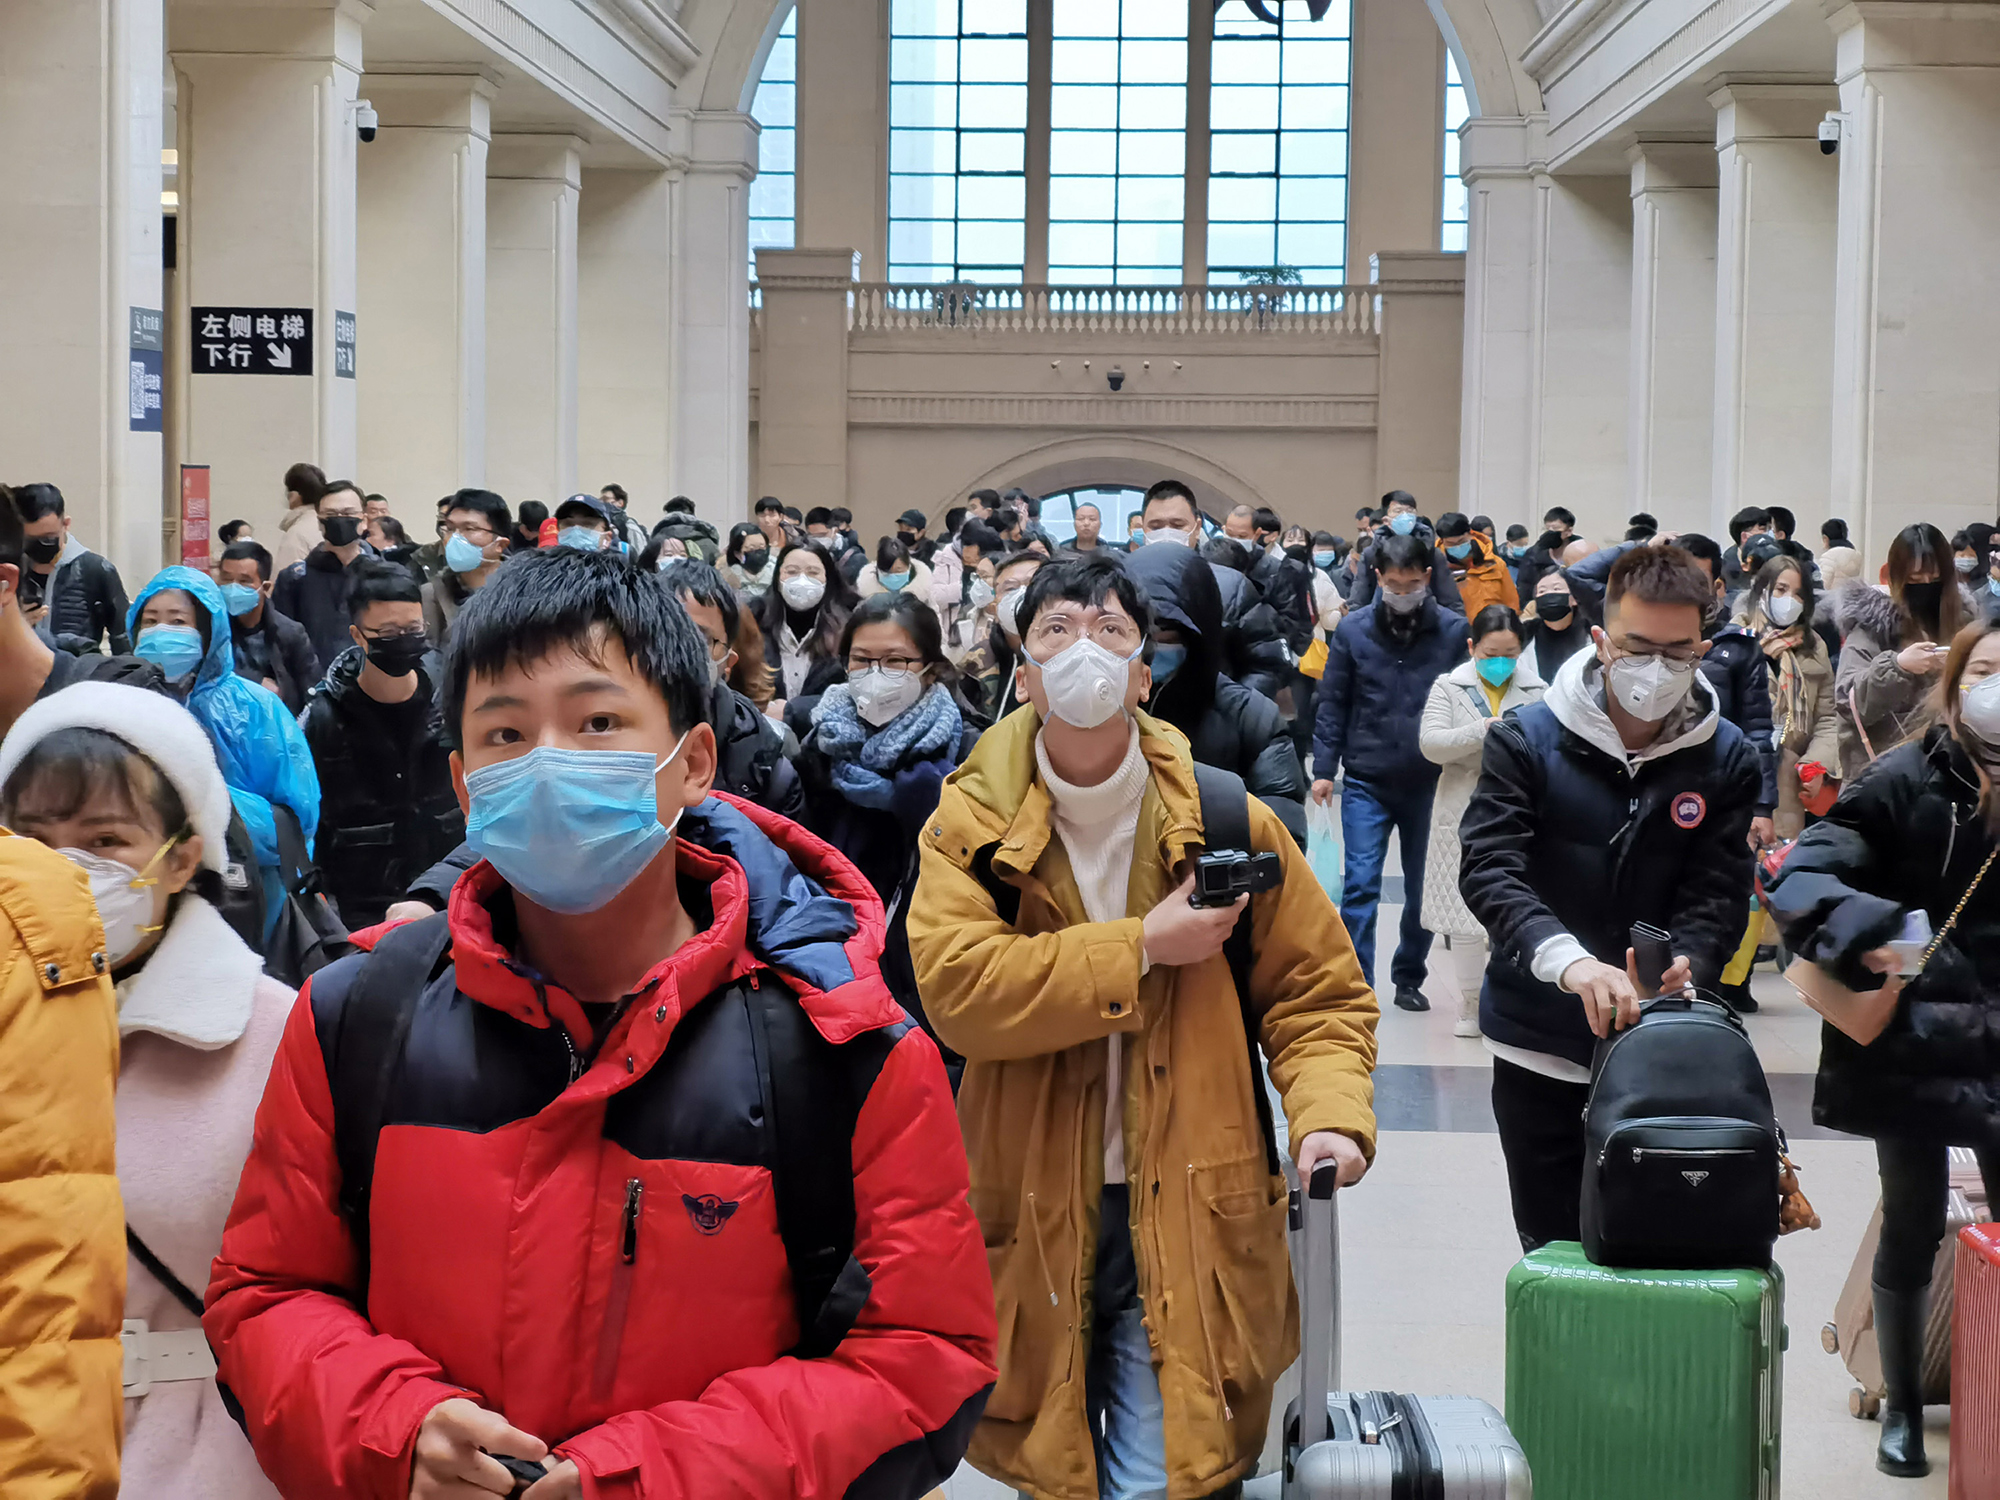 People wear face masks as they wait at Hankou Railway Station on Wednesday in Wuhan, China.